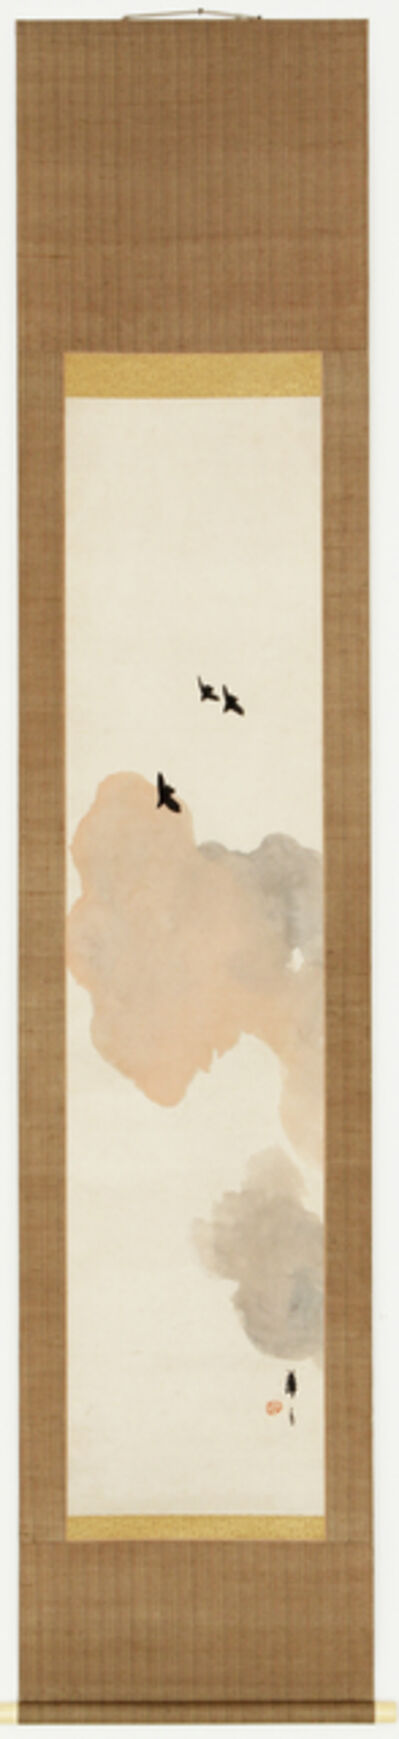 Tsuji Kakō, 'Crows at Dusk (T-3590)', ca. 1912